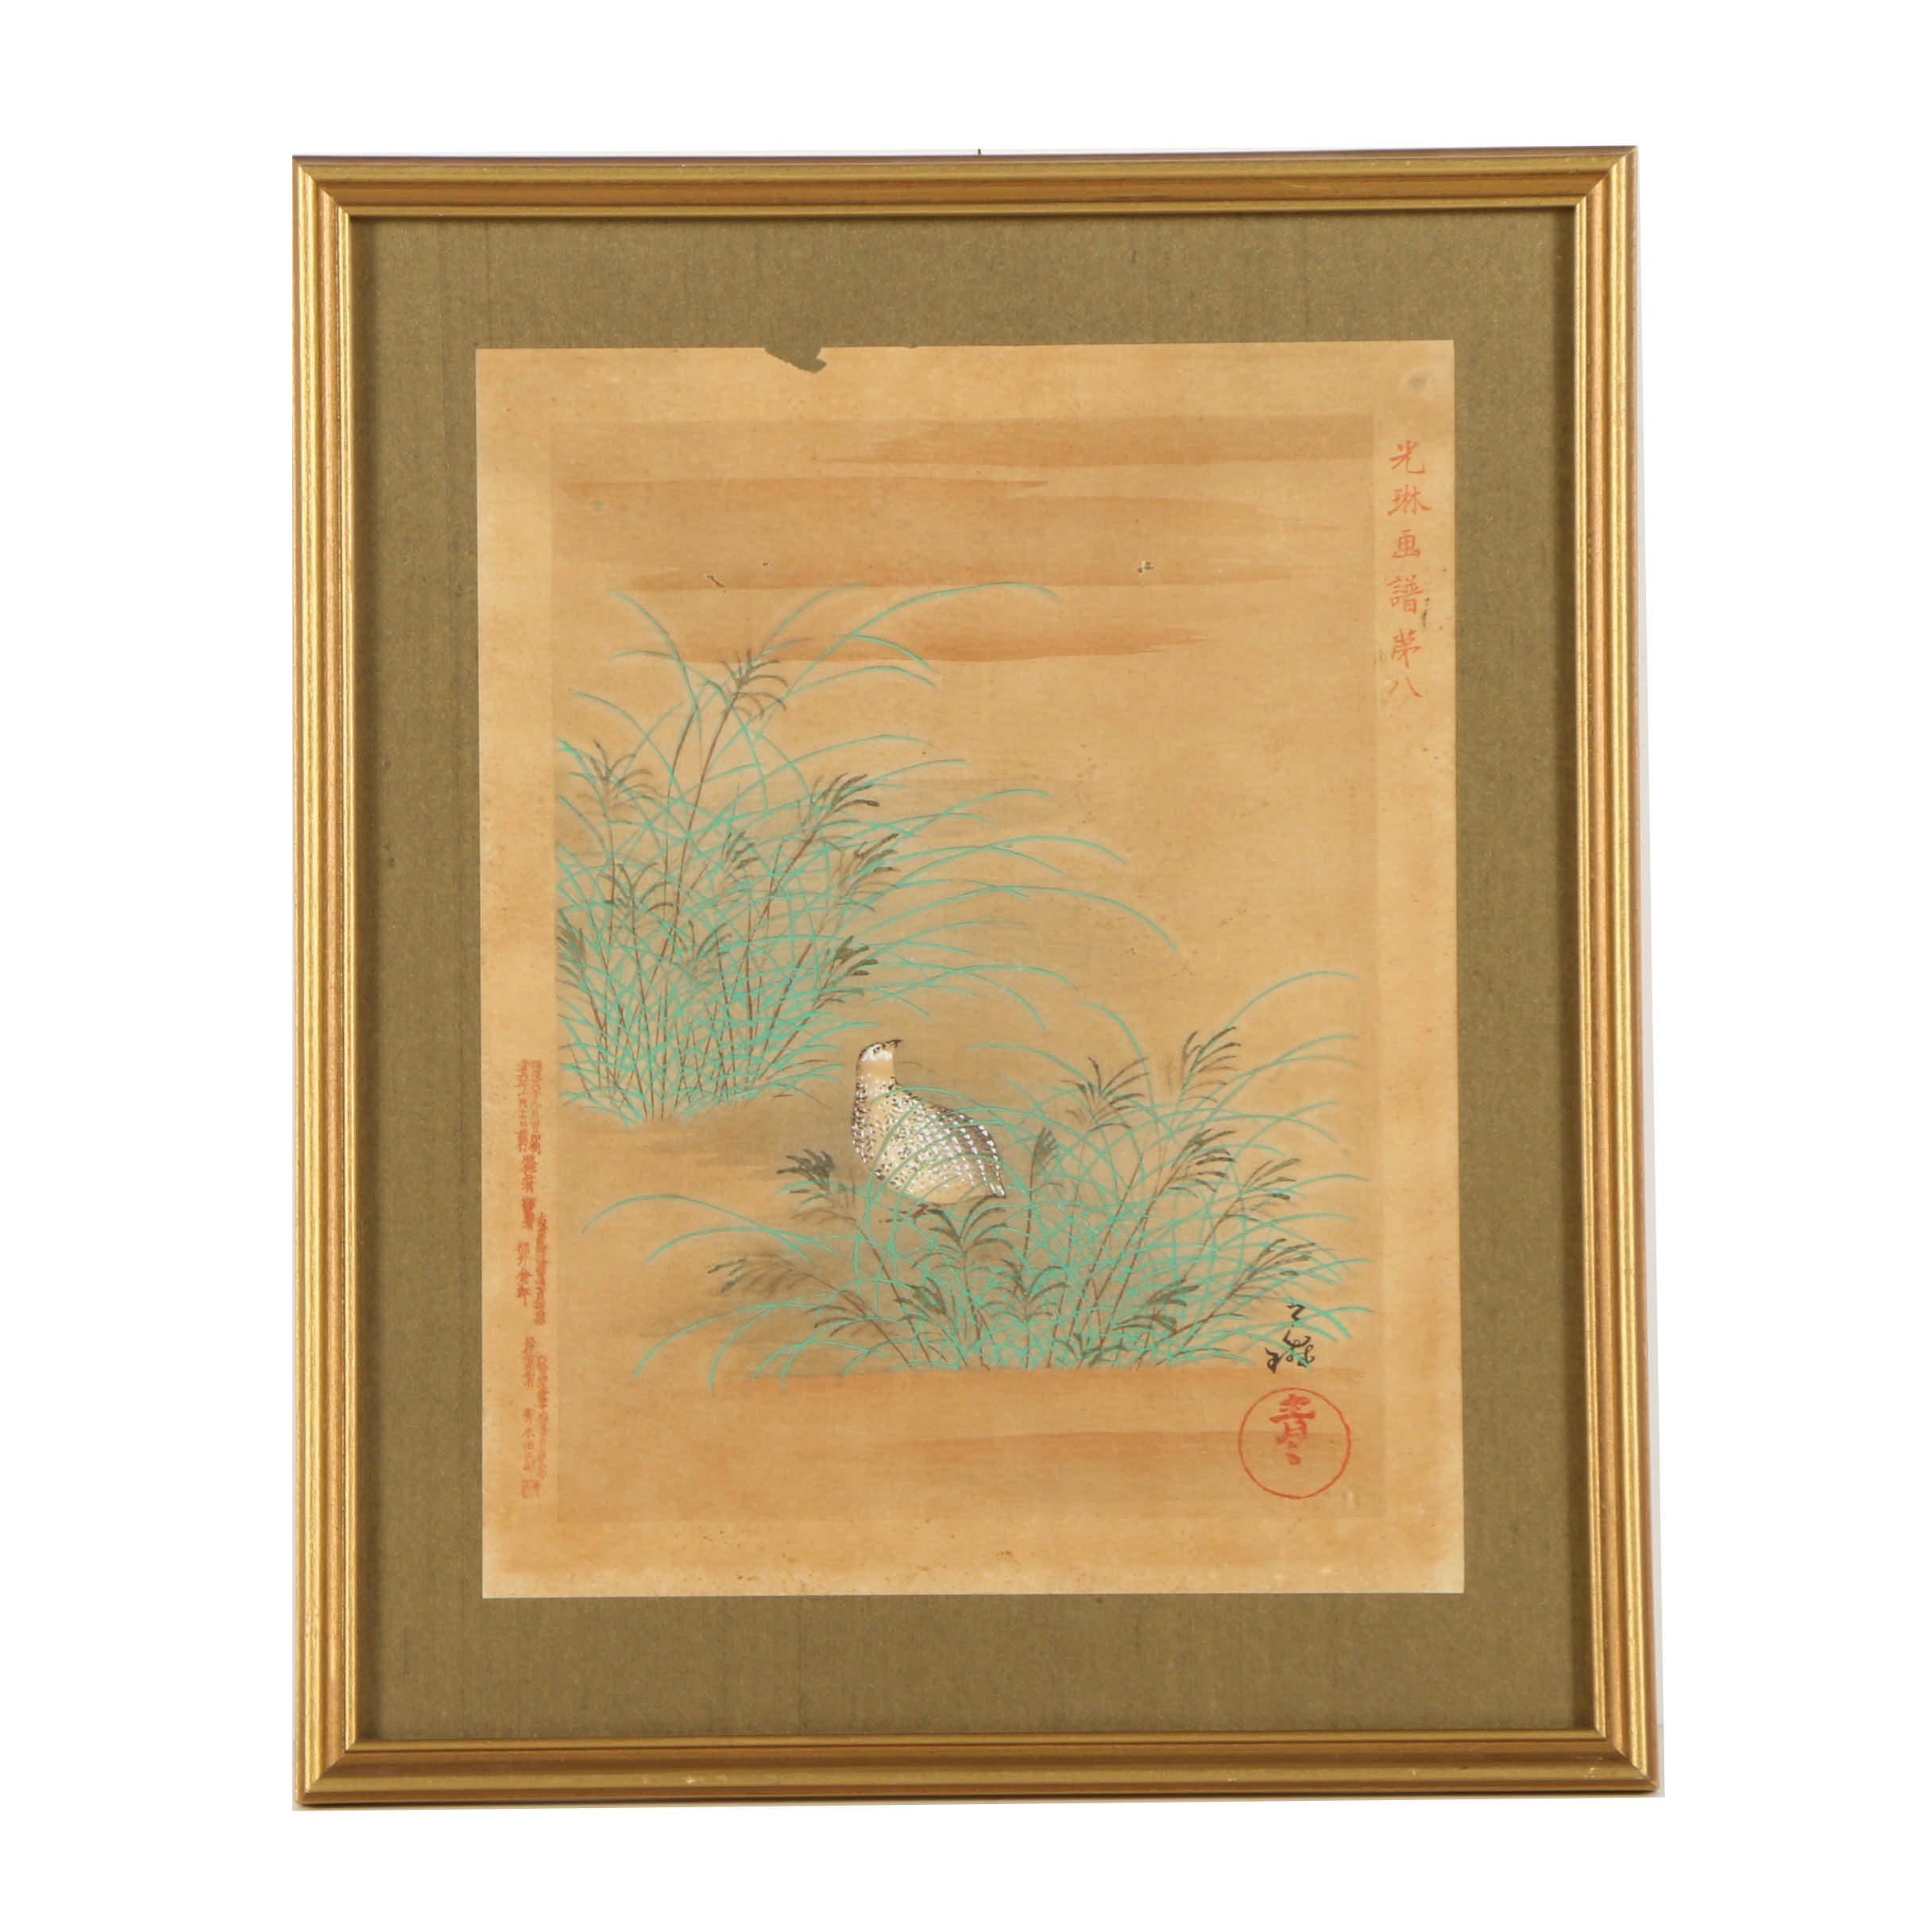 Japanese Woodblock Print with Hand-Colored Details of Quail After Ogata Korin